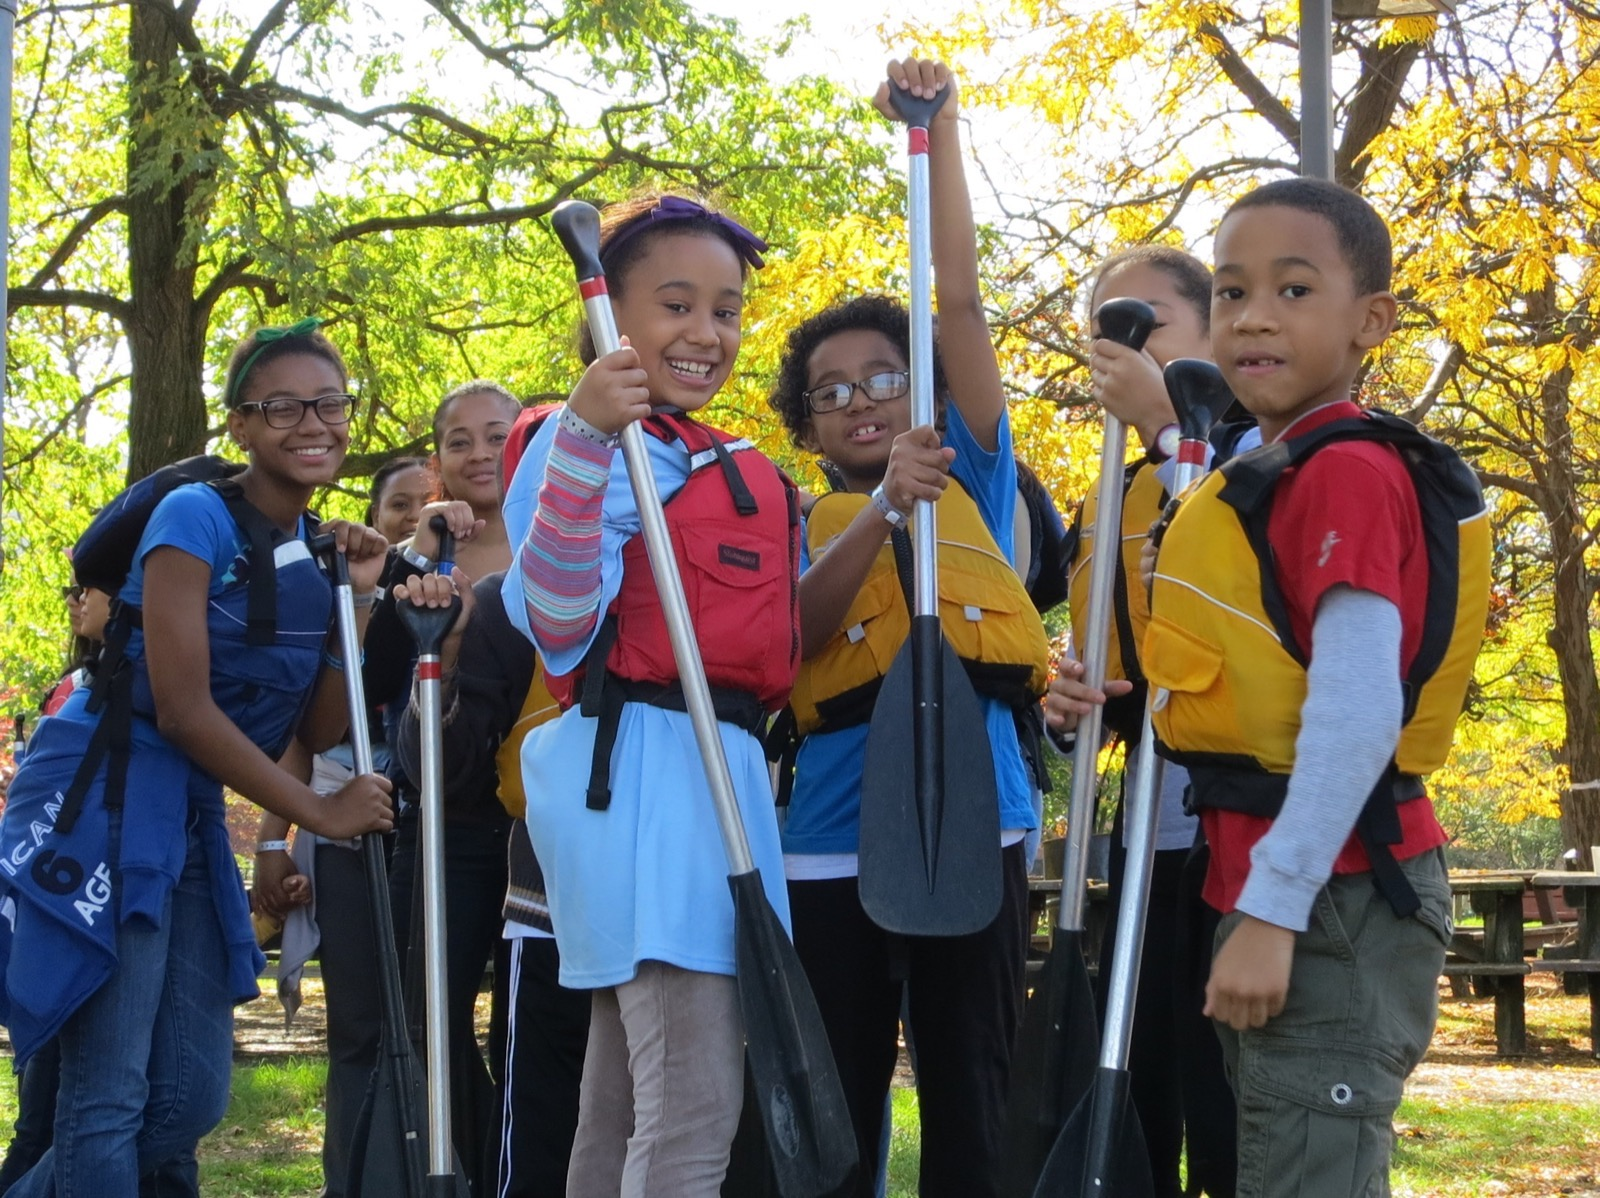 a group of young students wear their life jackets while holding their paddles waiting to get into a canoe